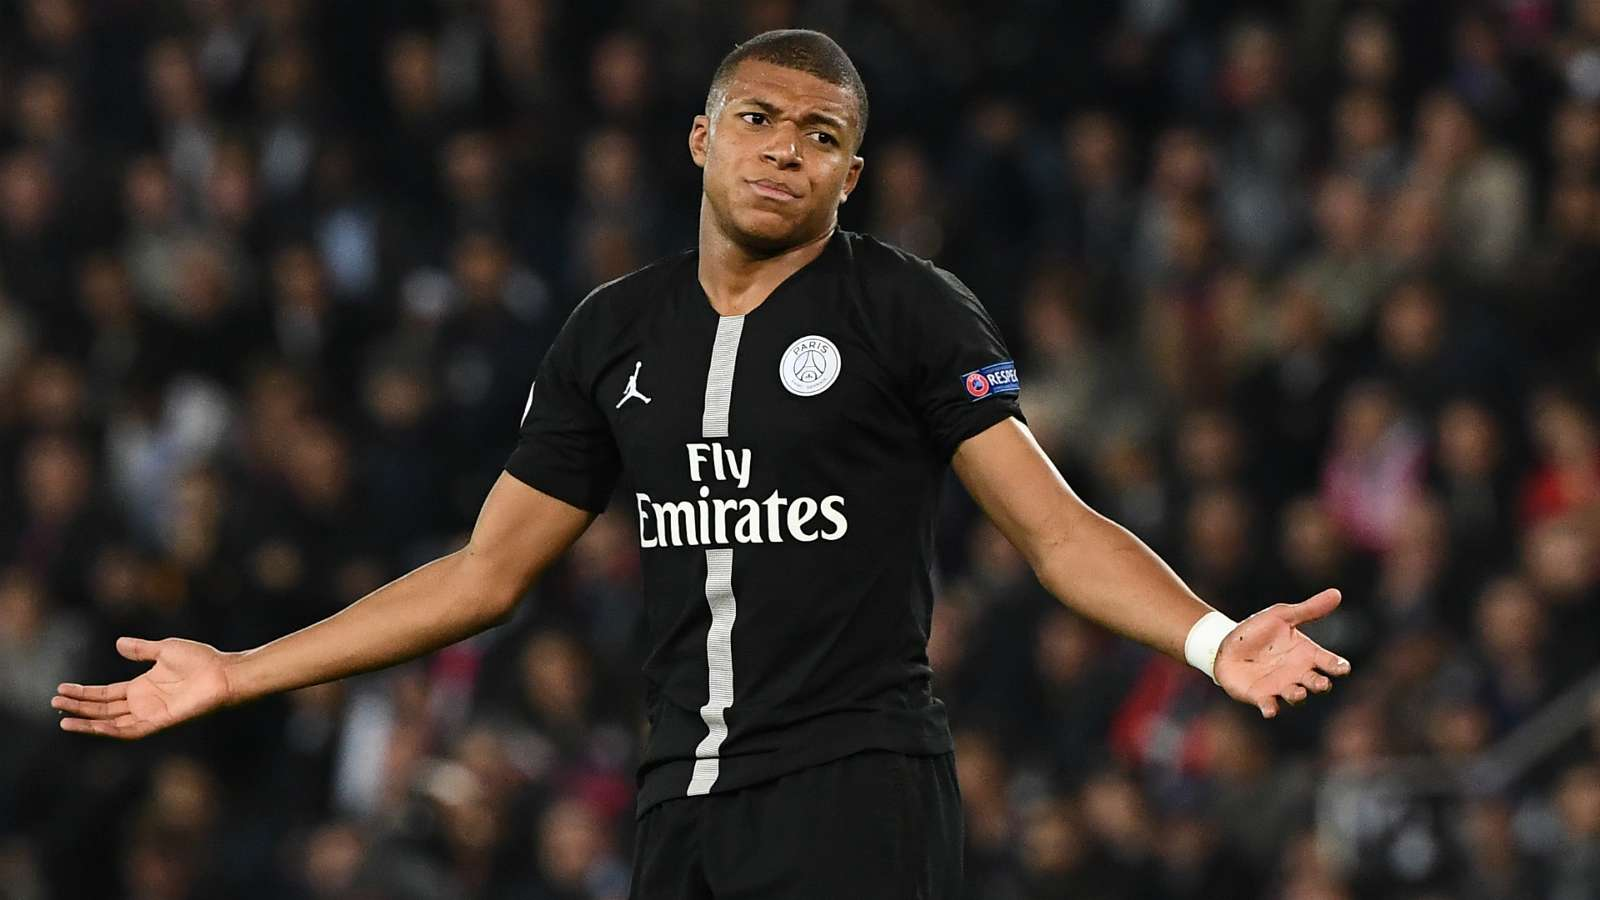 Marquinhos: Everyone fell in love with Mbappe and not Zidane alone